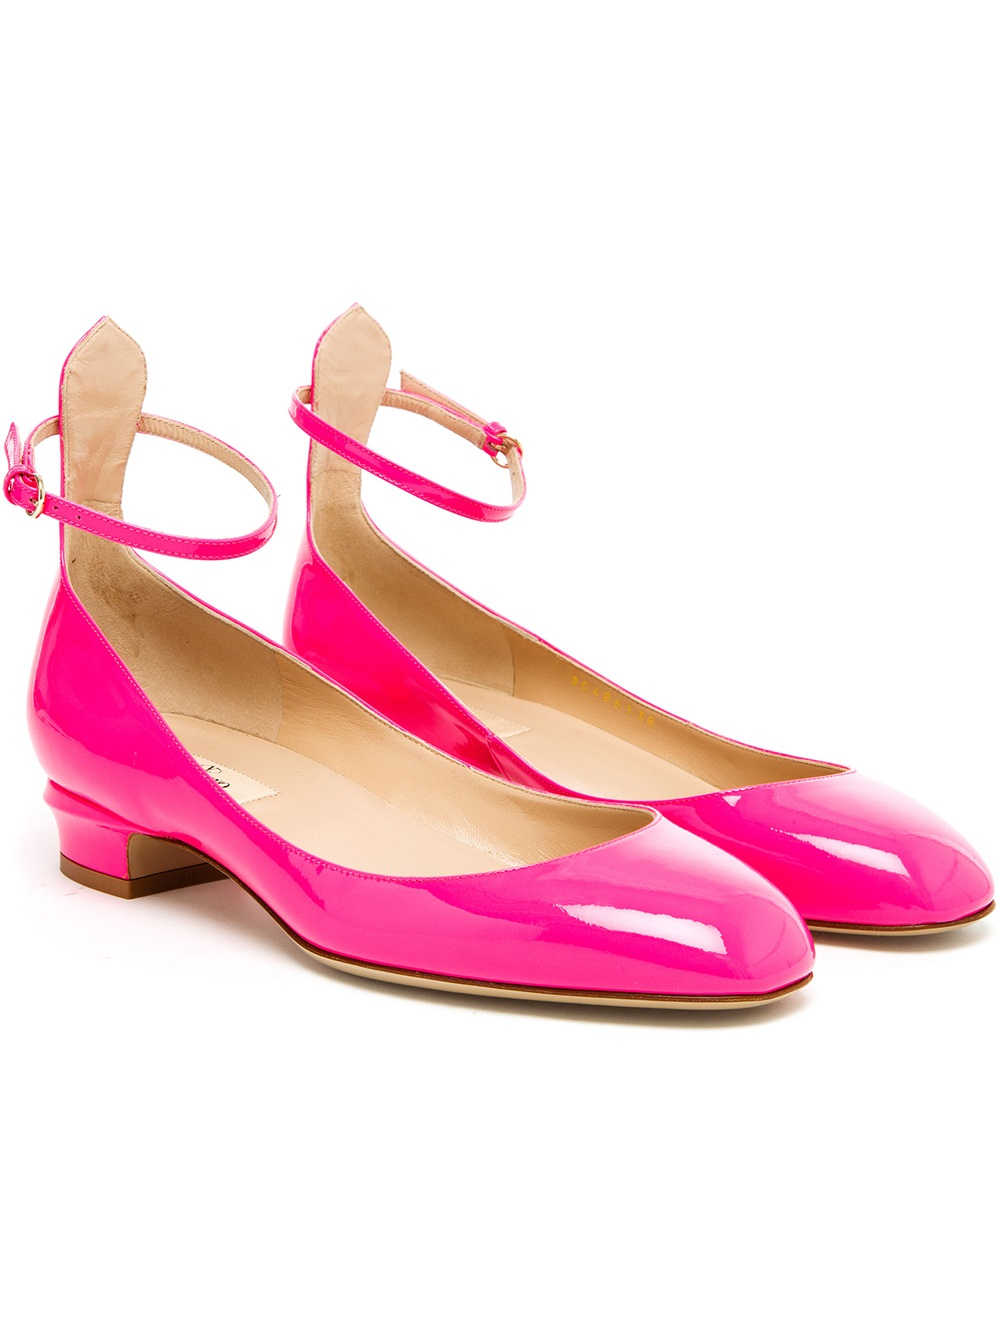 Lyst Valentino Tango Patent Leather Mary Jane Pumps In Pink